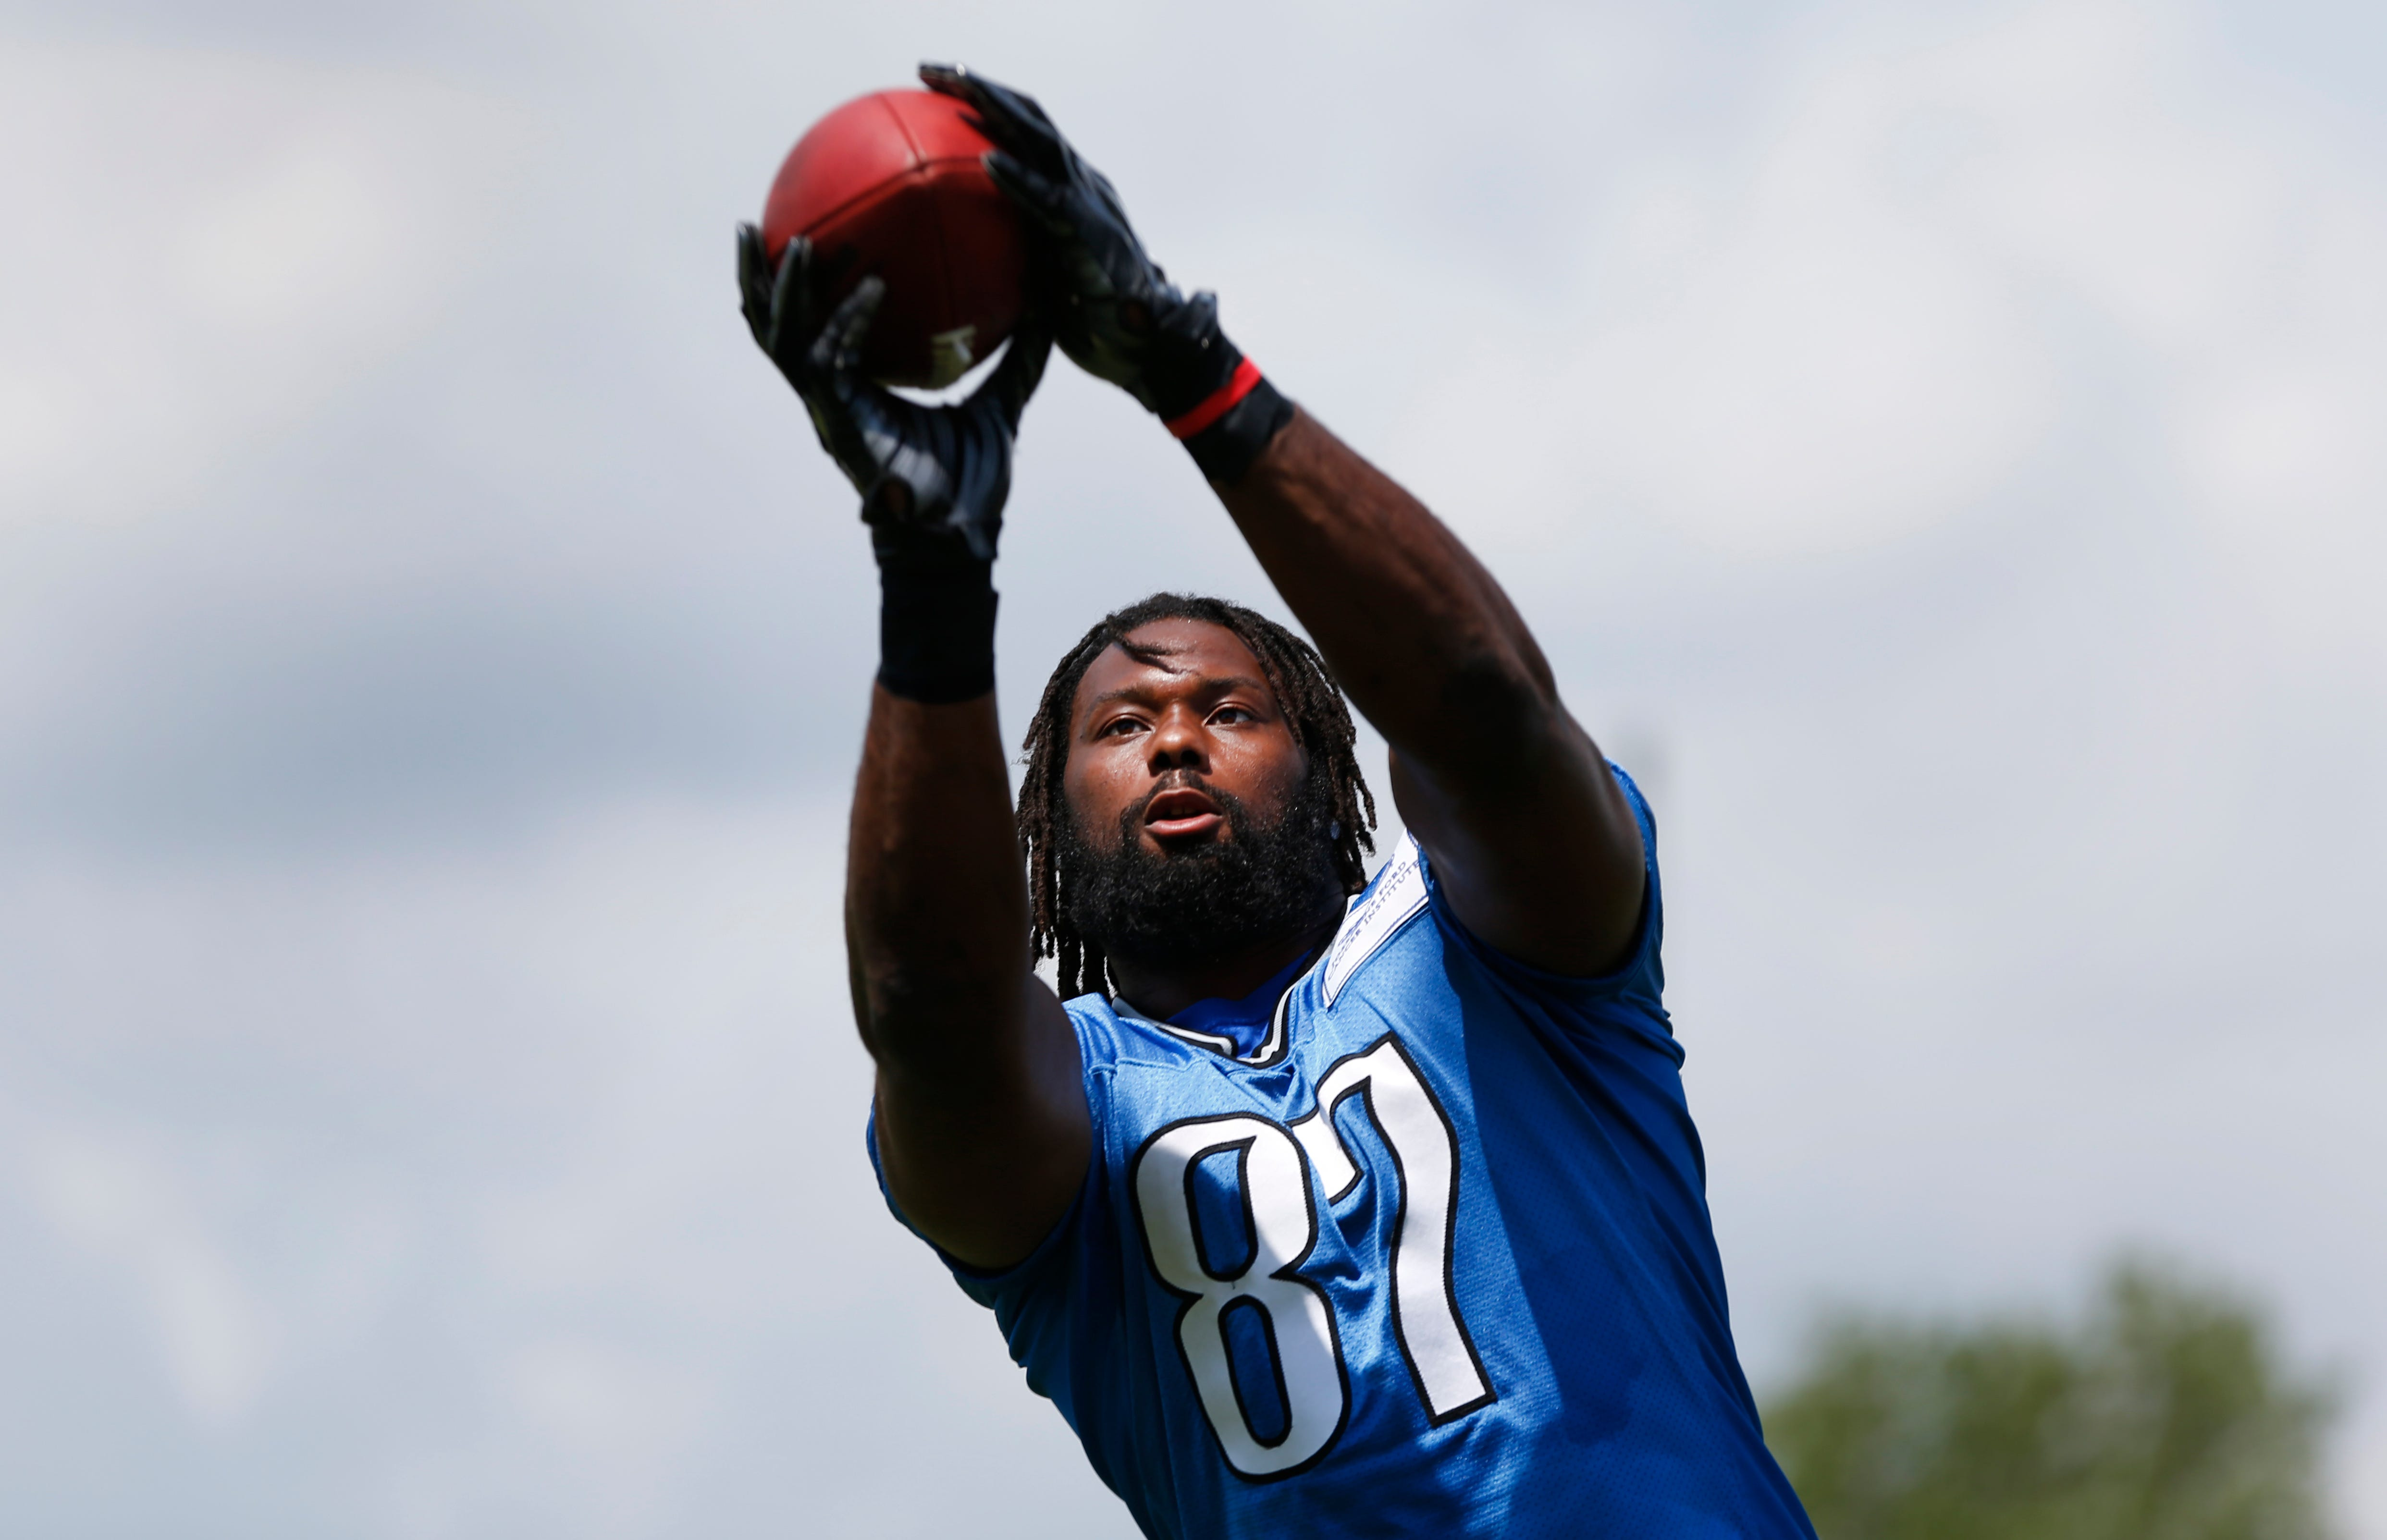 Ex-Detroit Lions TE Brandon Pettigrew arrested after punching police officer, per report